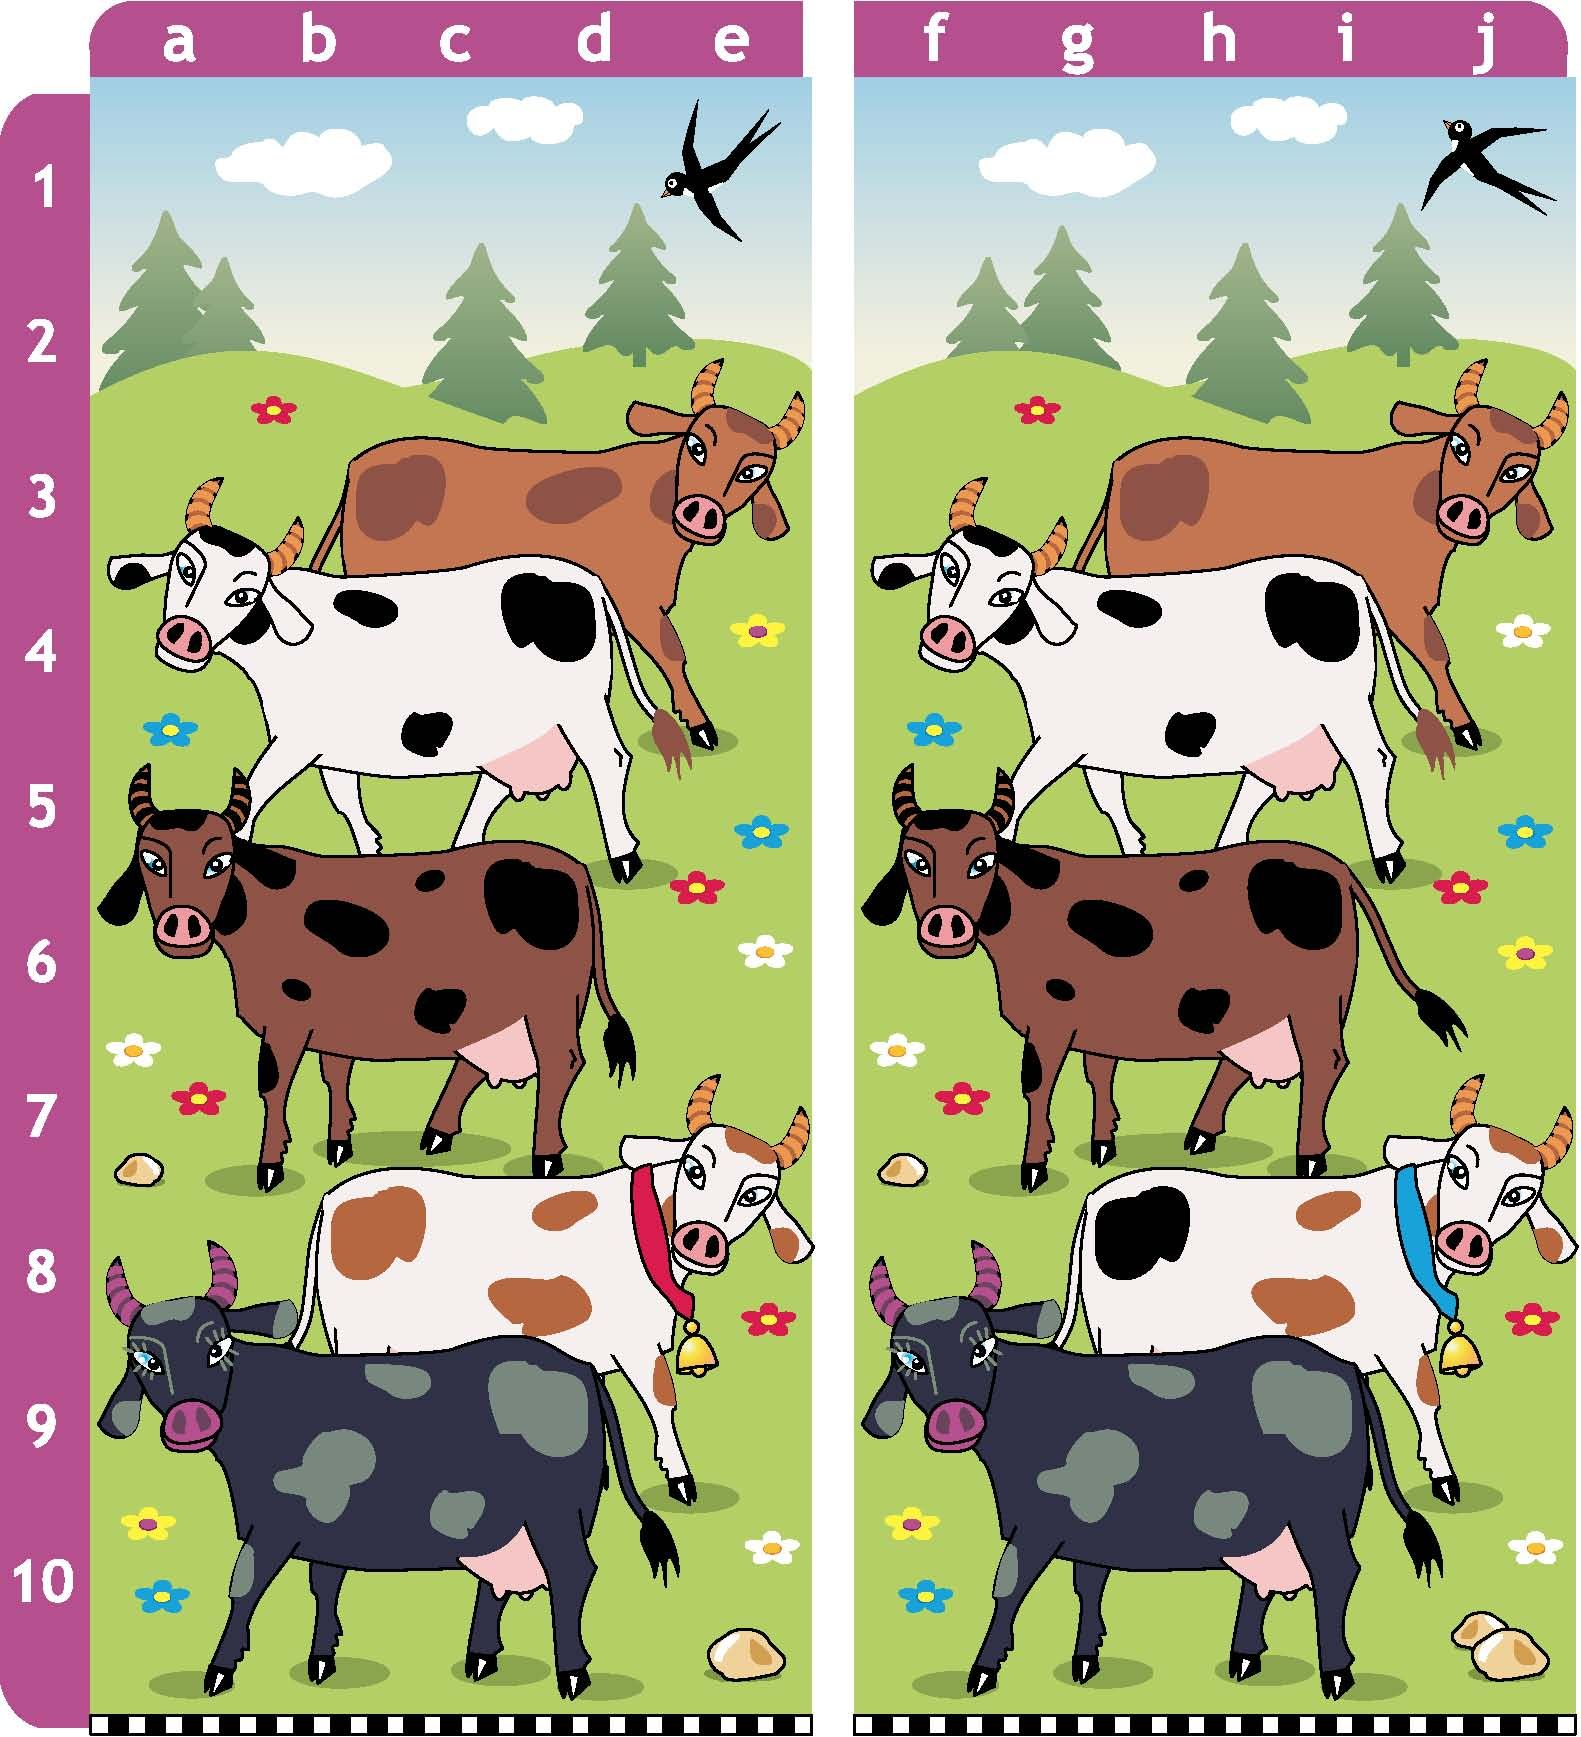 Free Find the Differences Game for children! Online